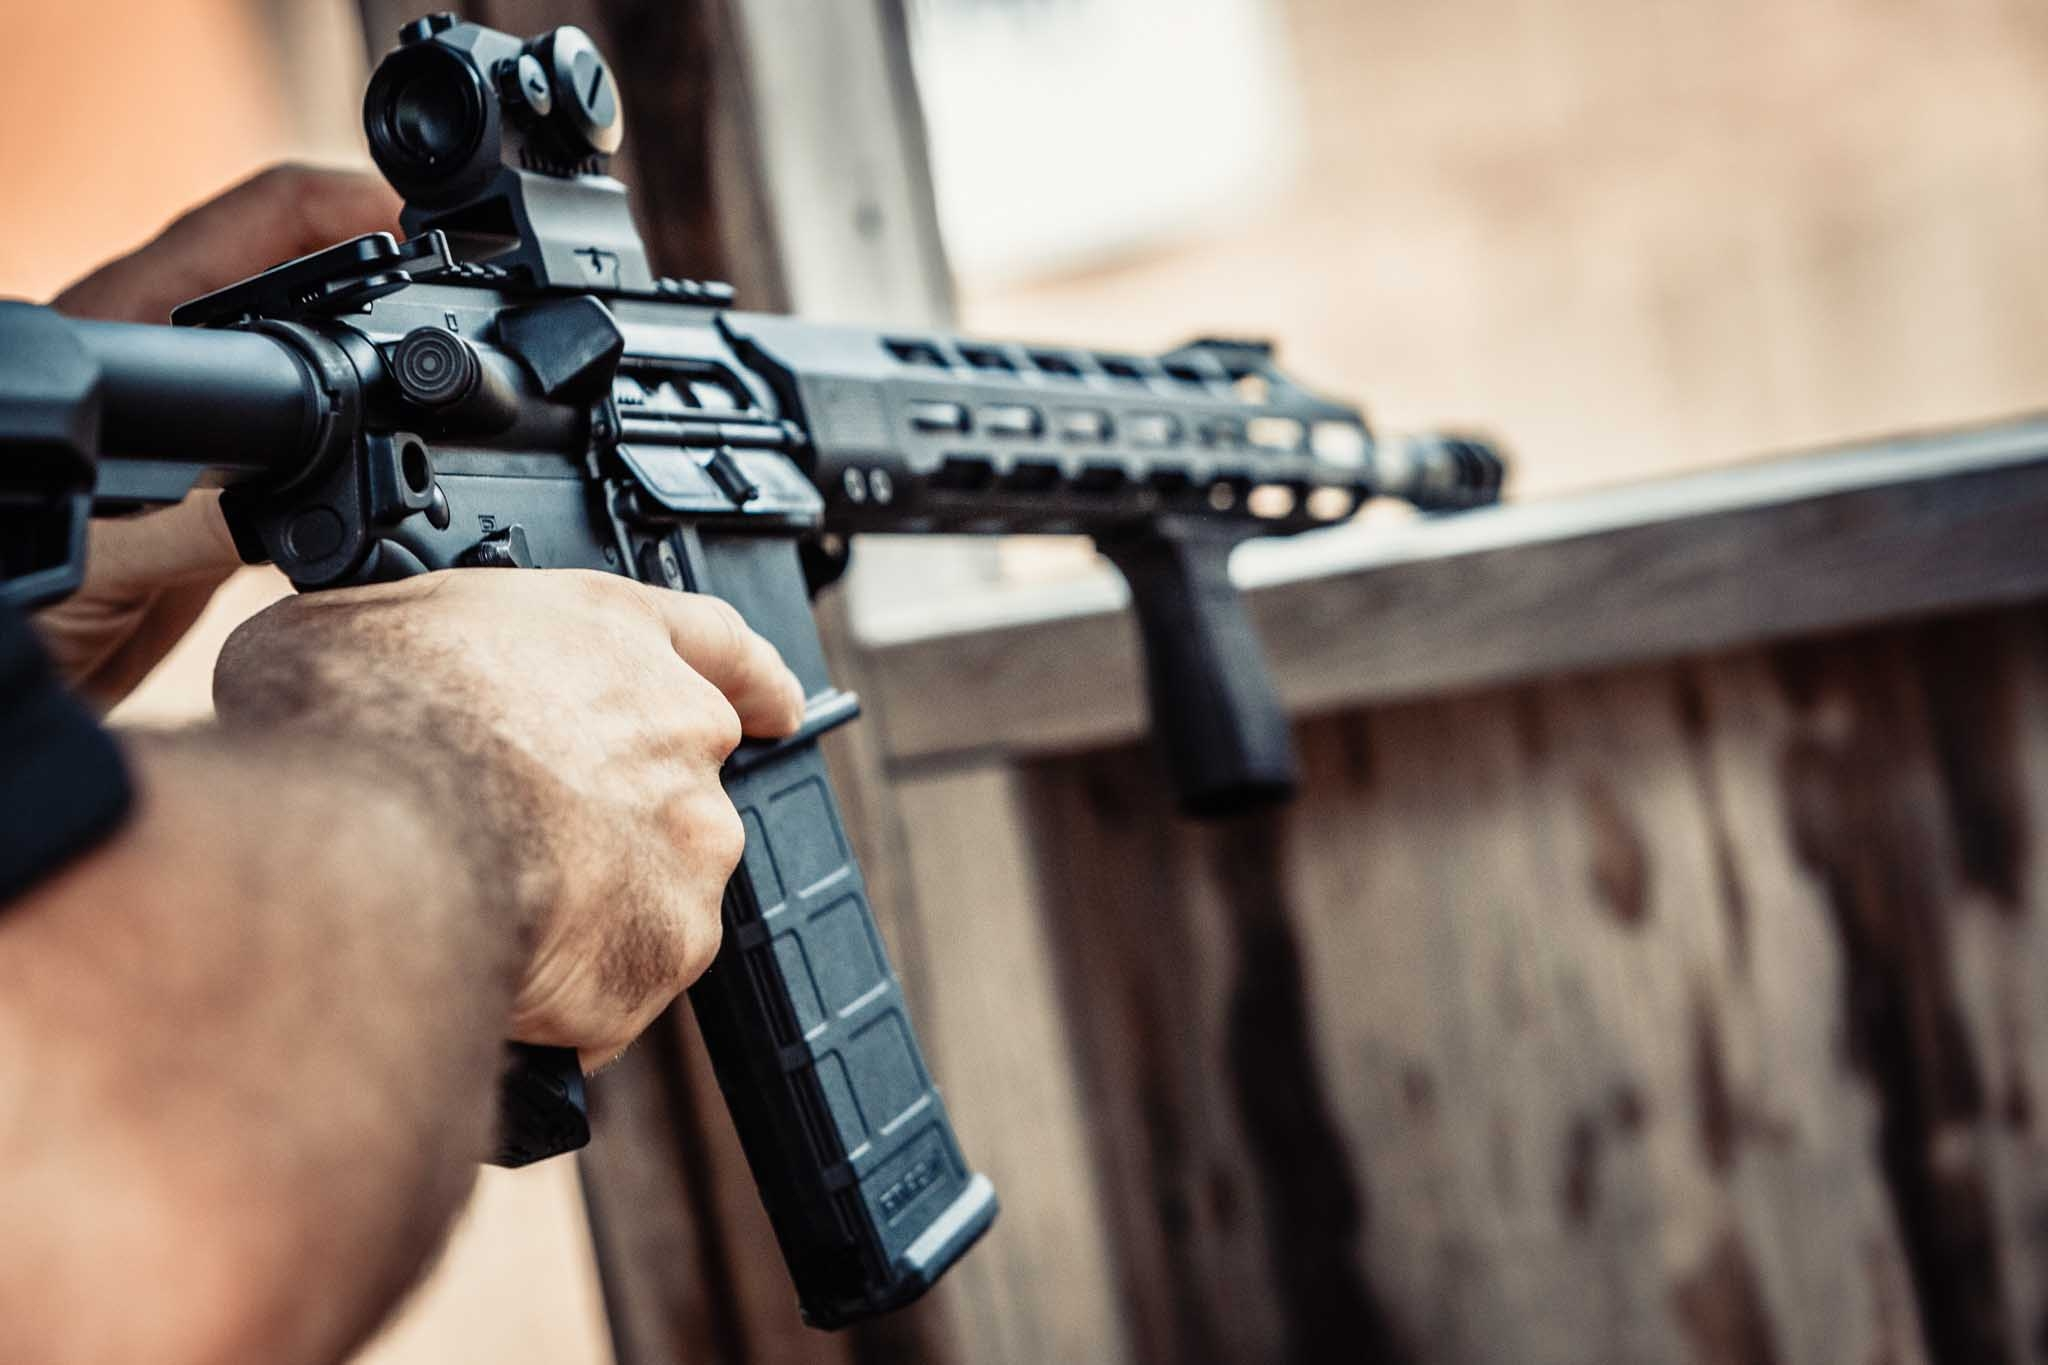 The SIG Sauer M400 TREAD rifle during live fire